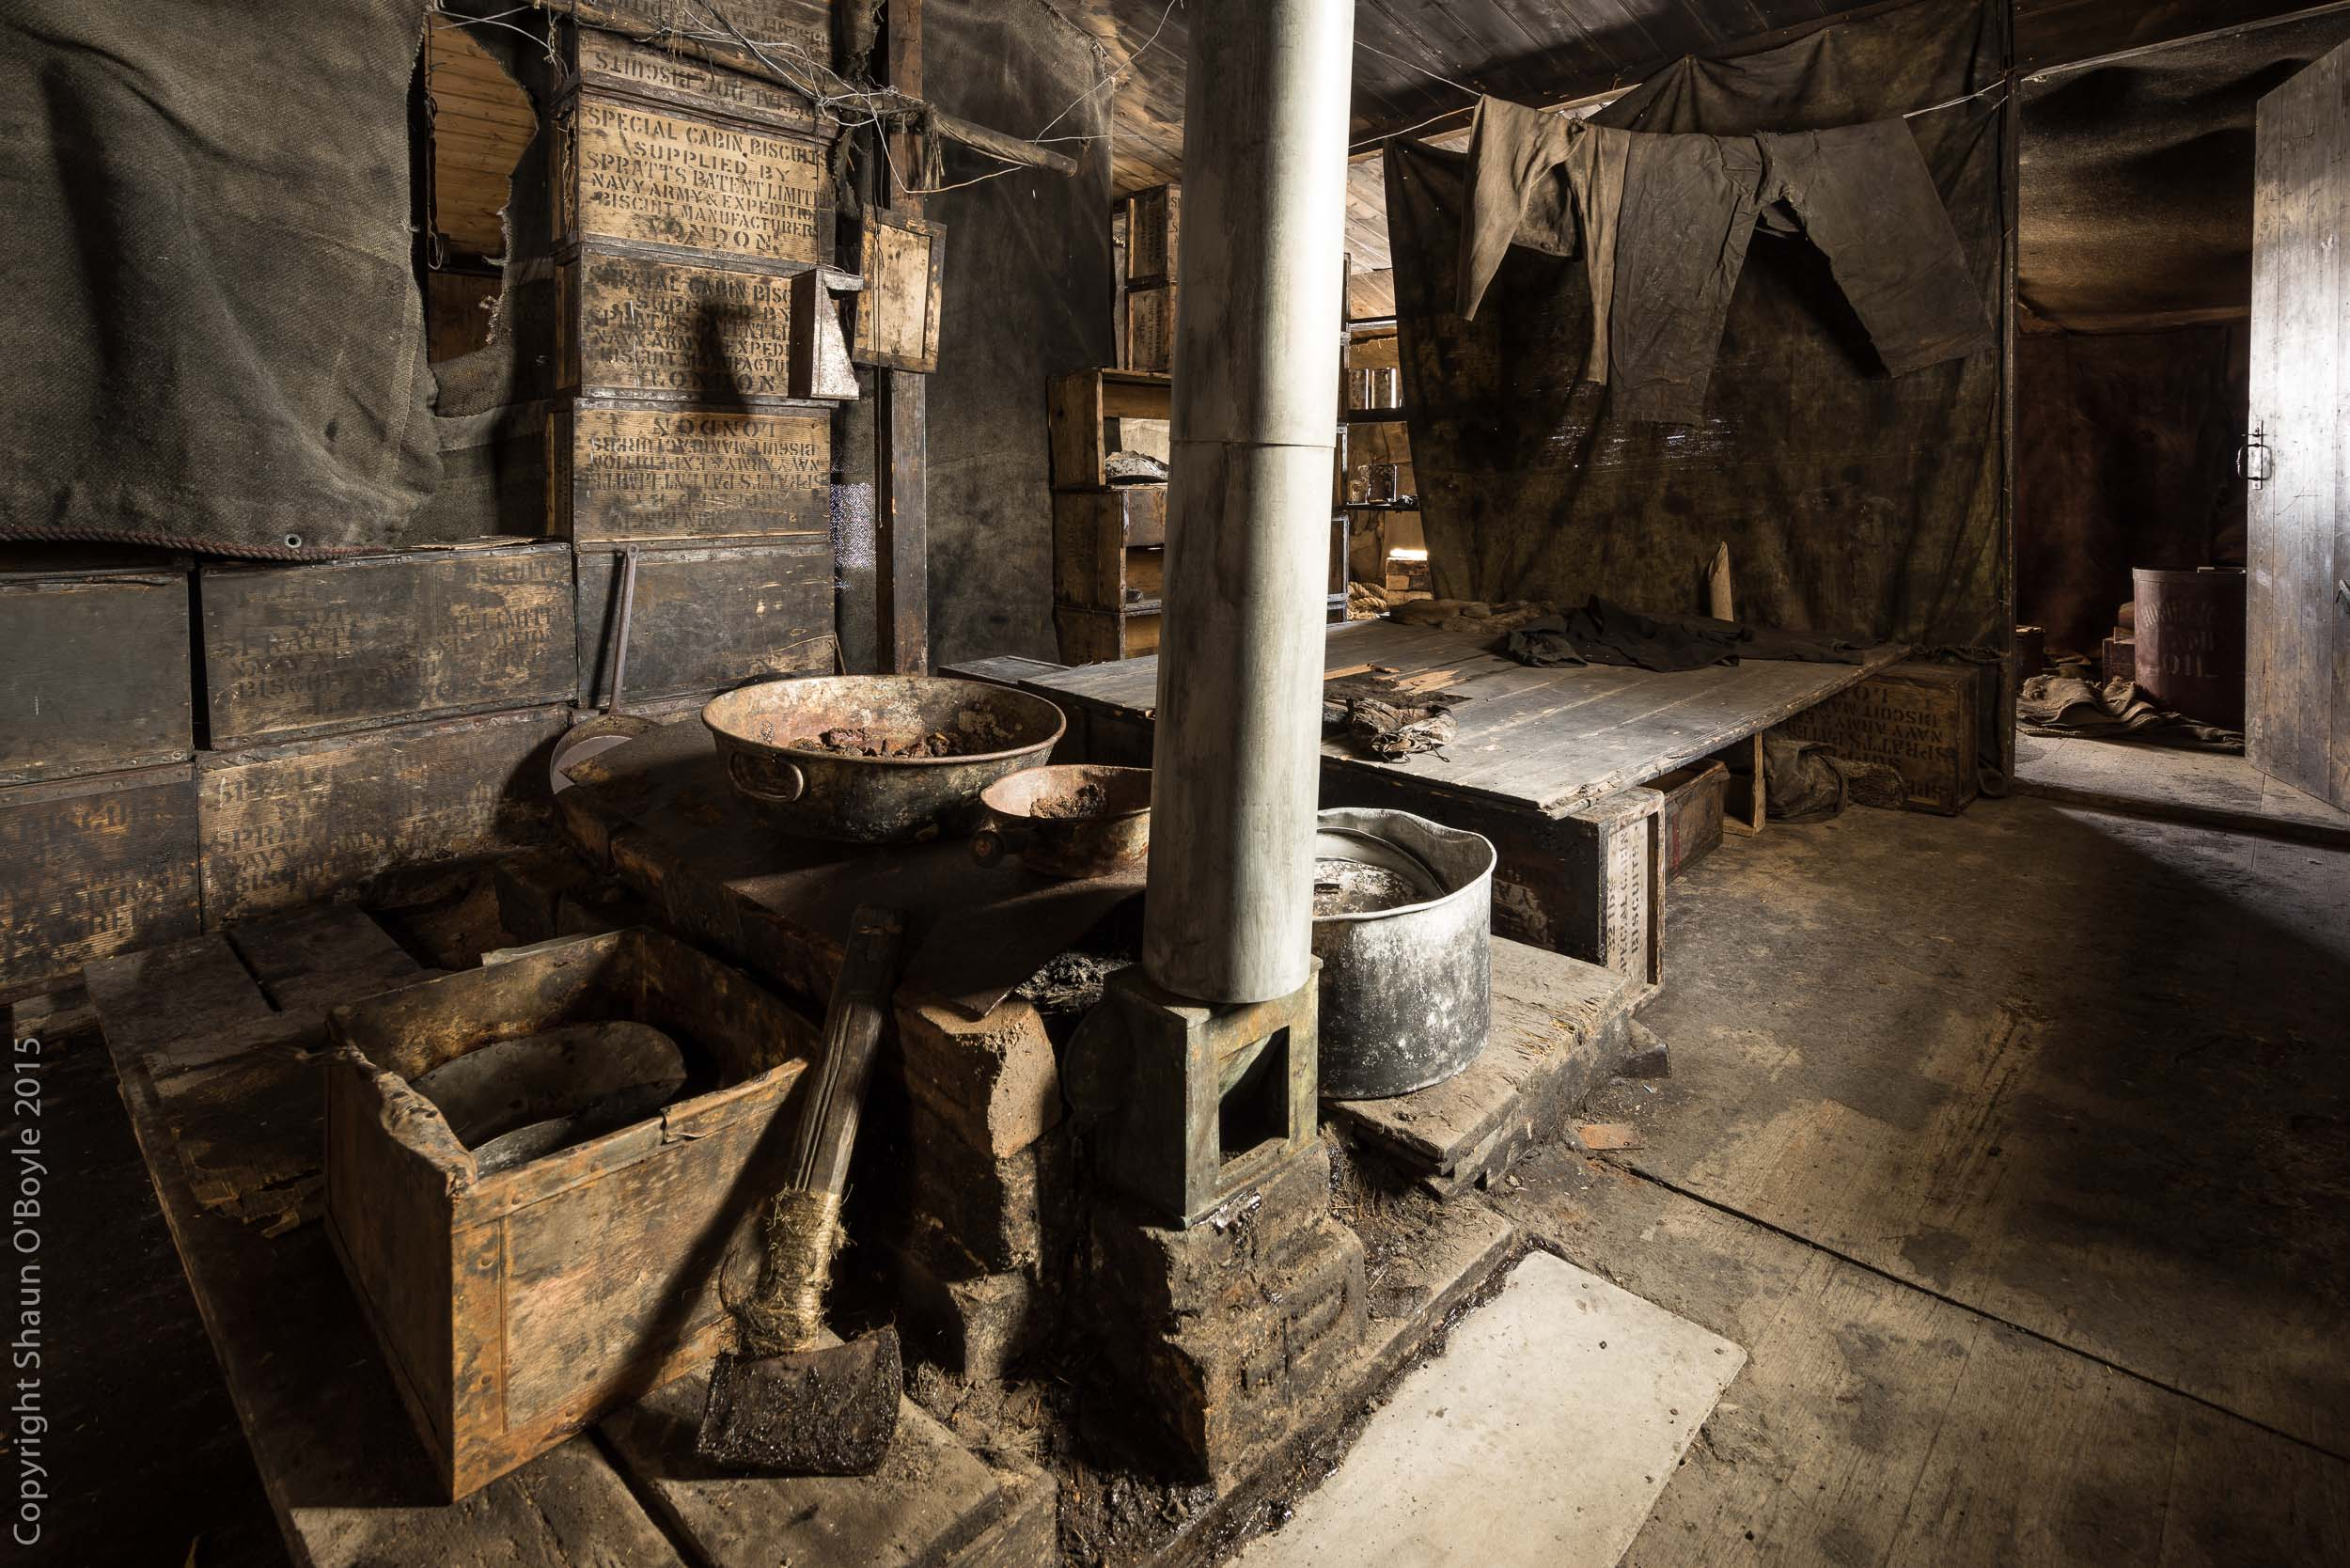 Improvised seal blubber stove and sleep platform. The hut was used extensively during the Terra Nova expedition as a stop off when traveling between Cape Evans and the Barrier and points south.